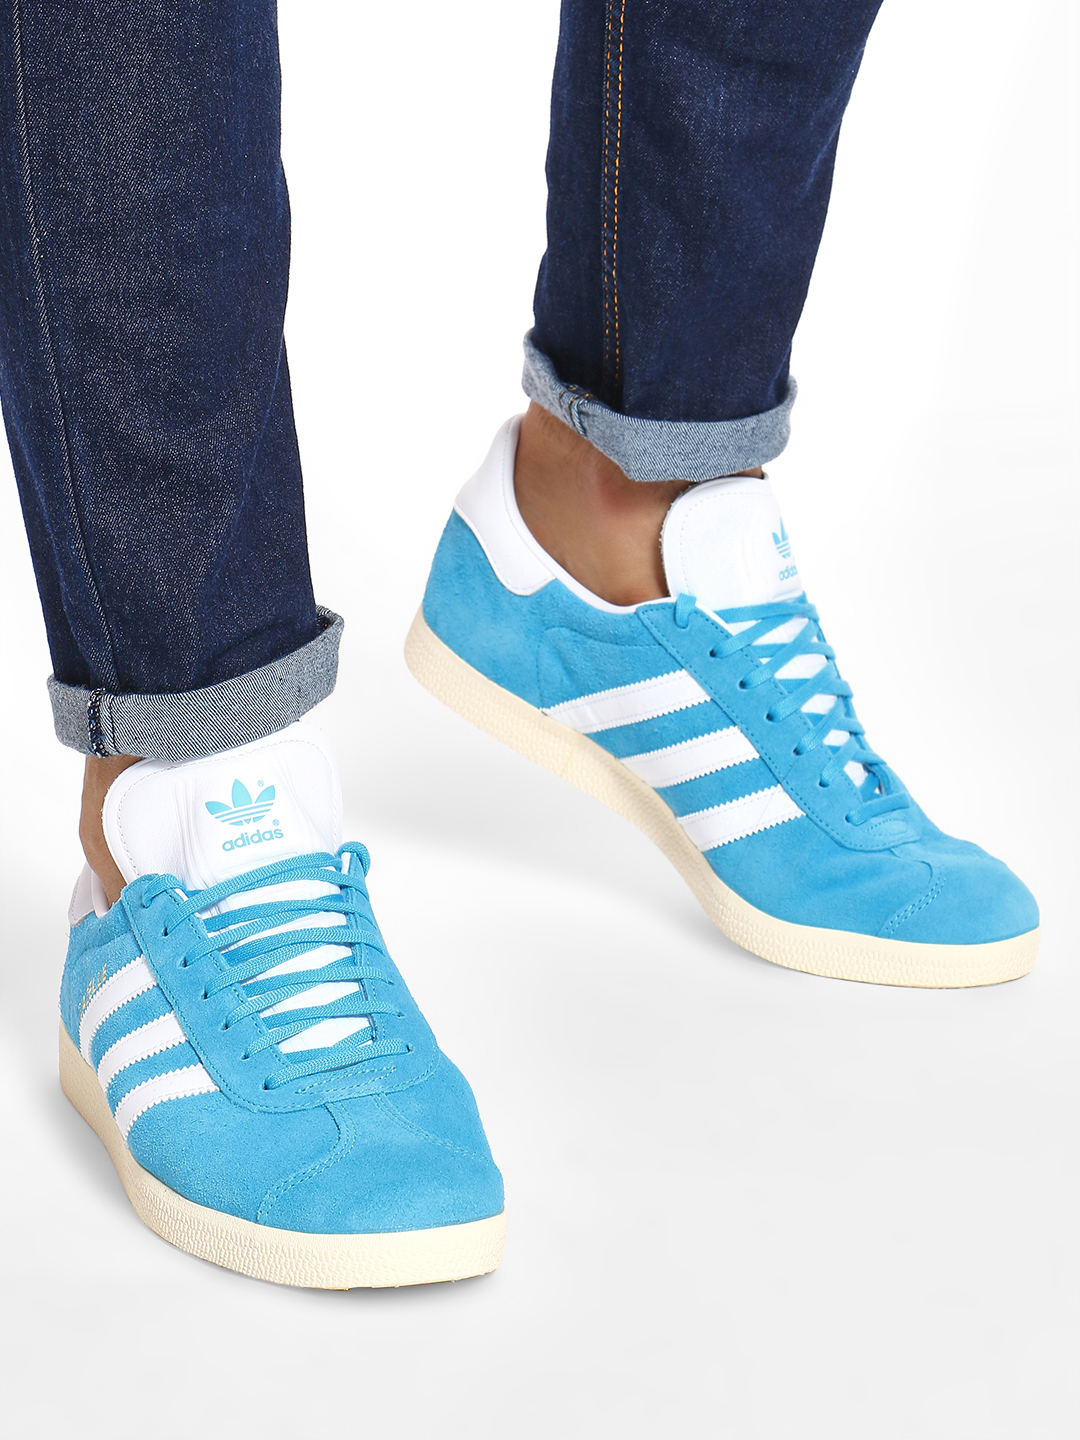 Adidas Originals Multi Gazelle Shoes 1